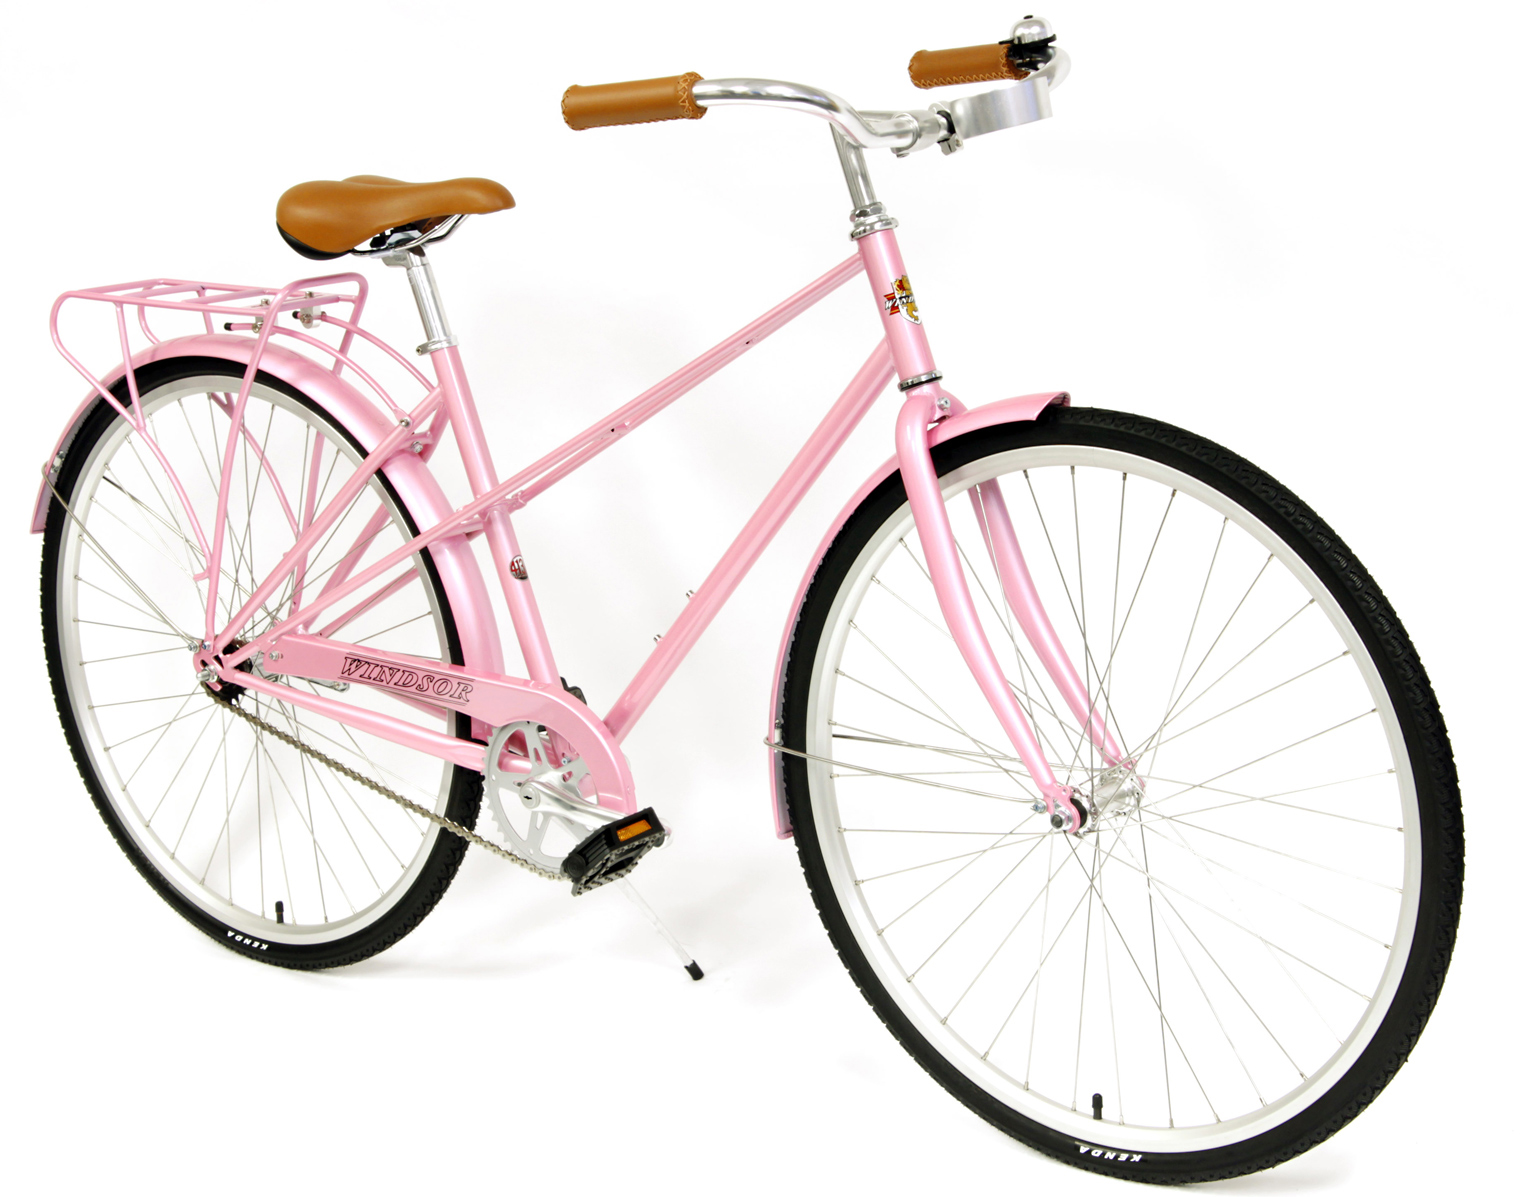 ESSEX DELUXE - WOMEN'S CHROMOLY 1 SPEED  w/ RACK &  FENDERS